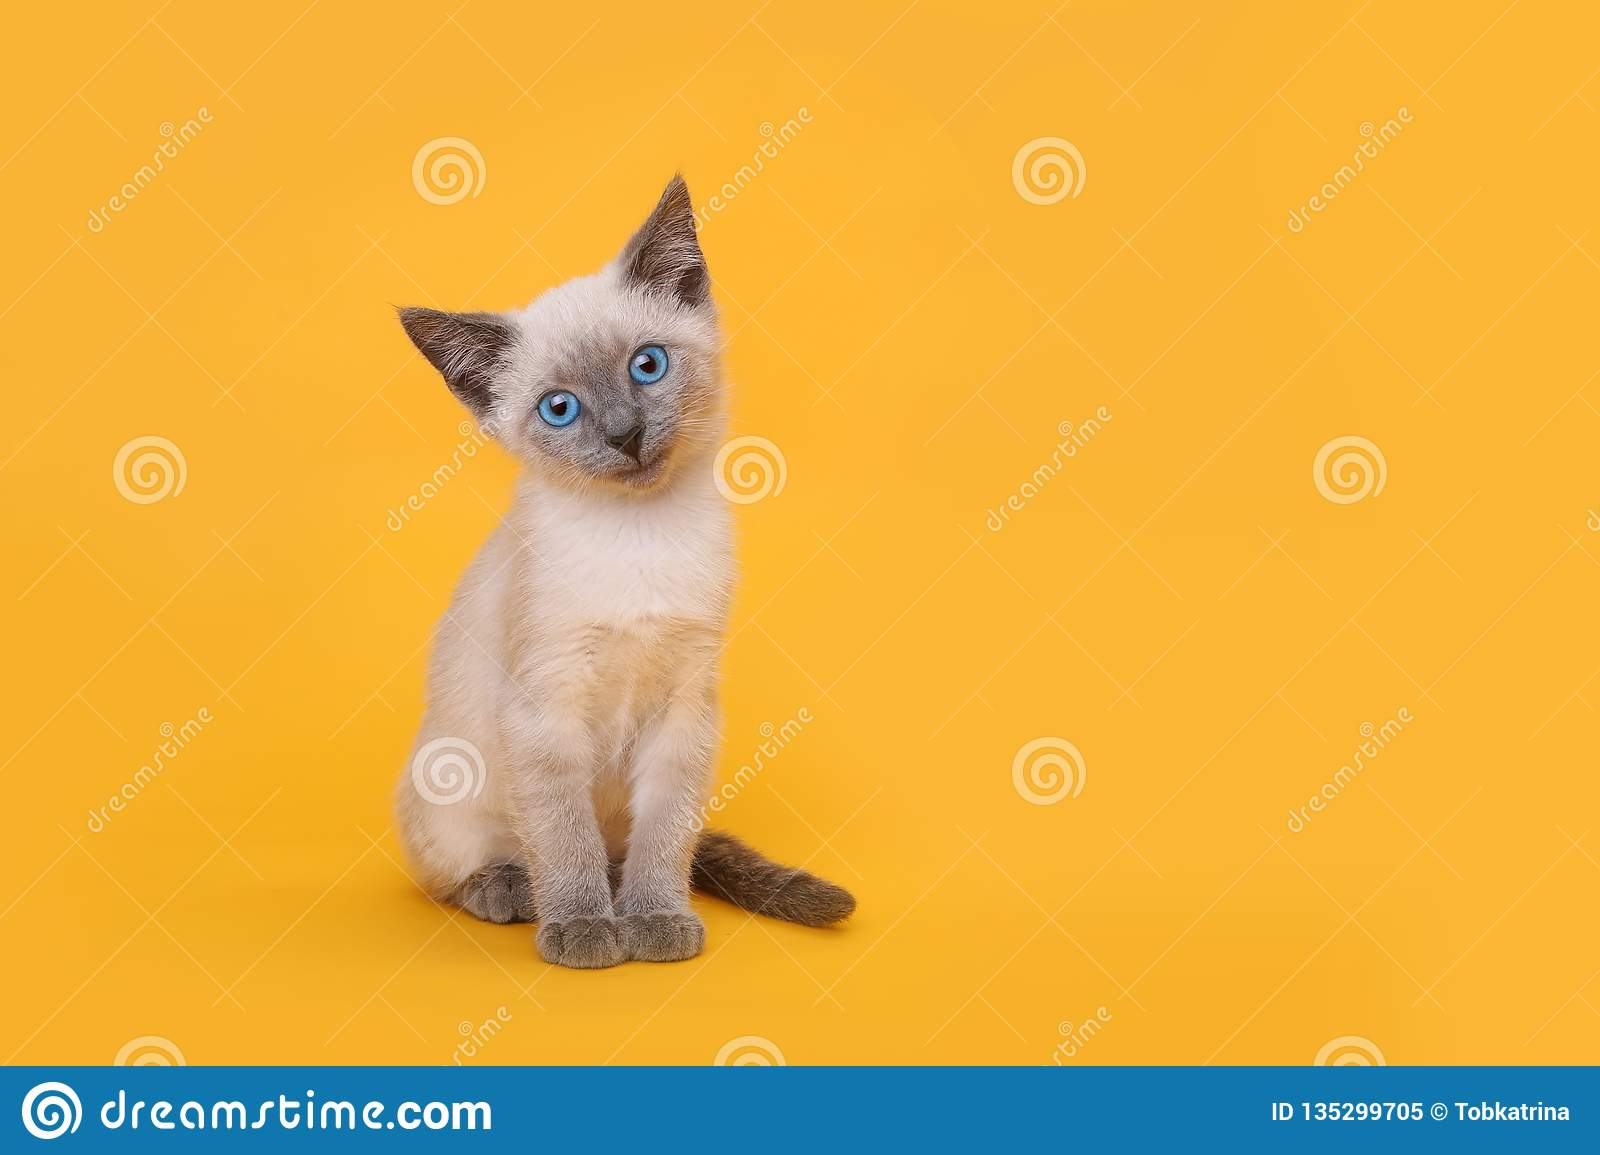 Kitten Smiling With Head Tilted siamoise sur le fond jaune